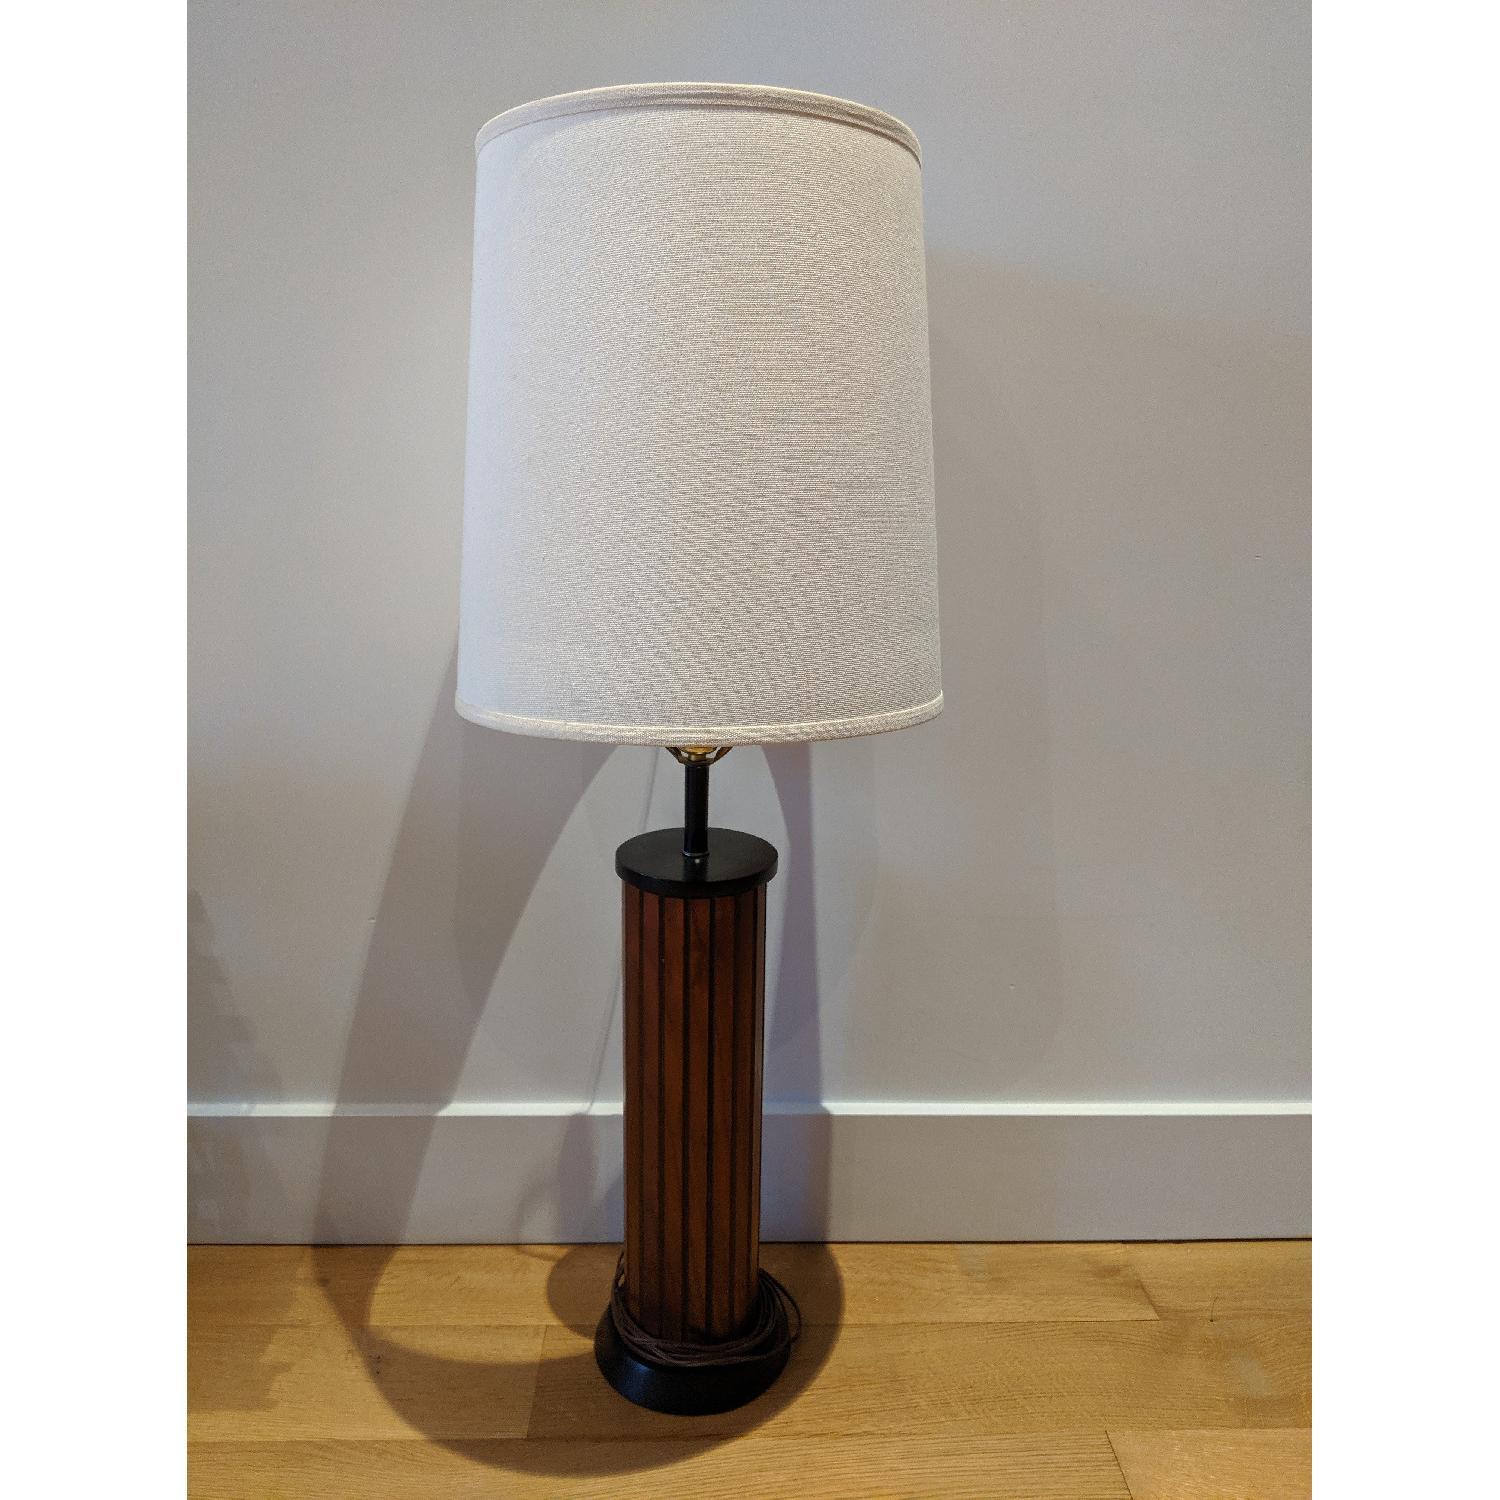 Vintage Mid Century Modern Lamps - image-2